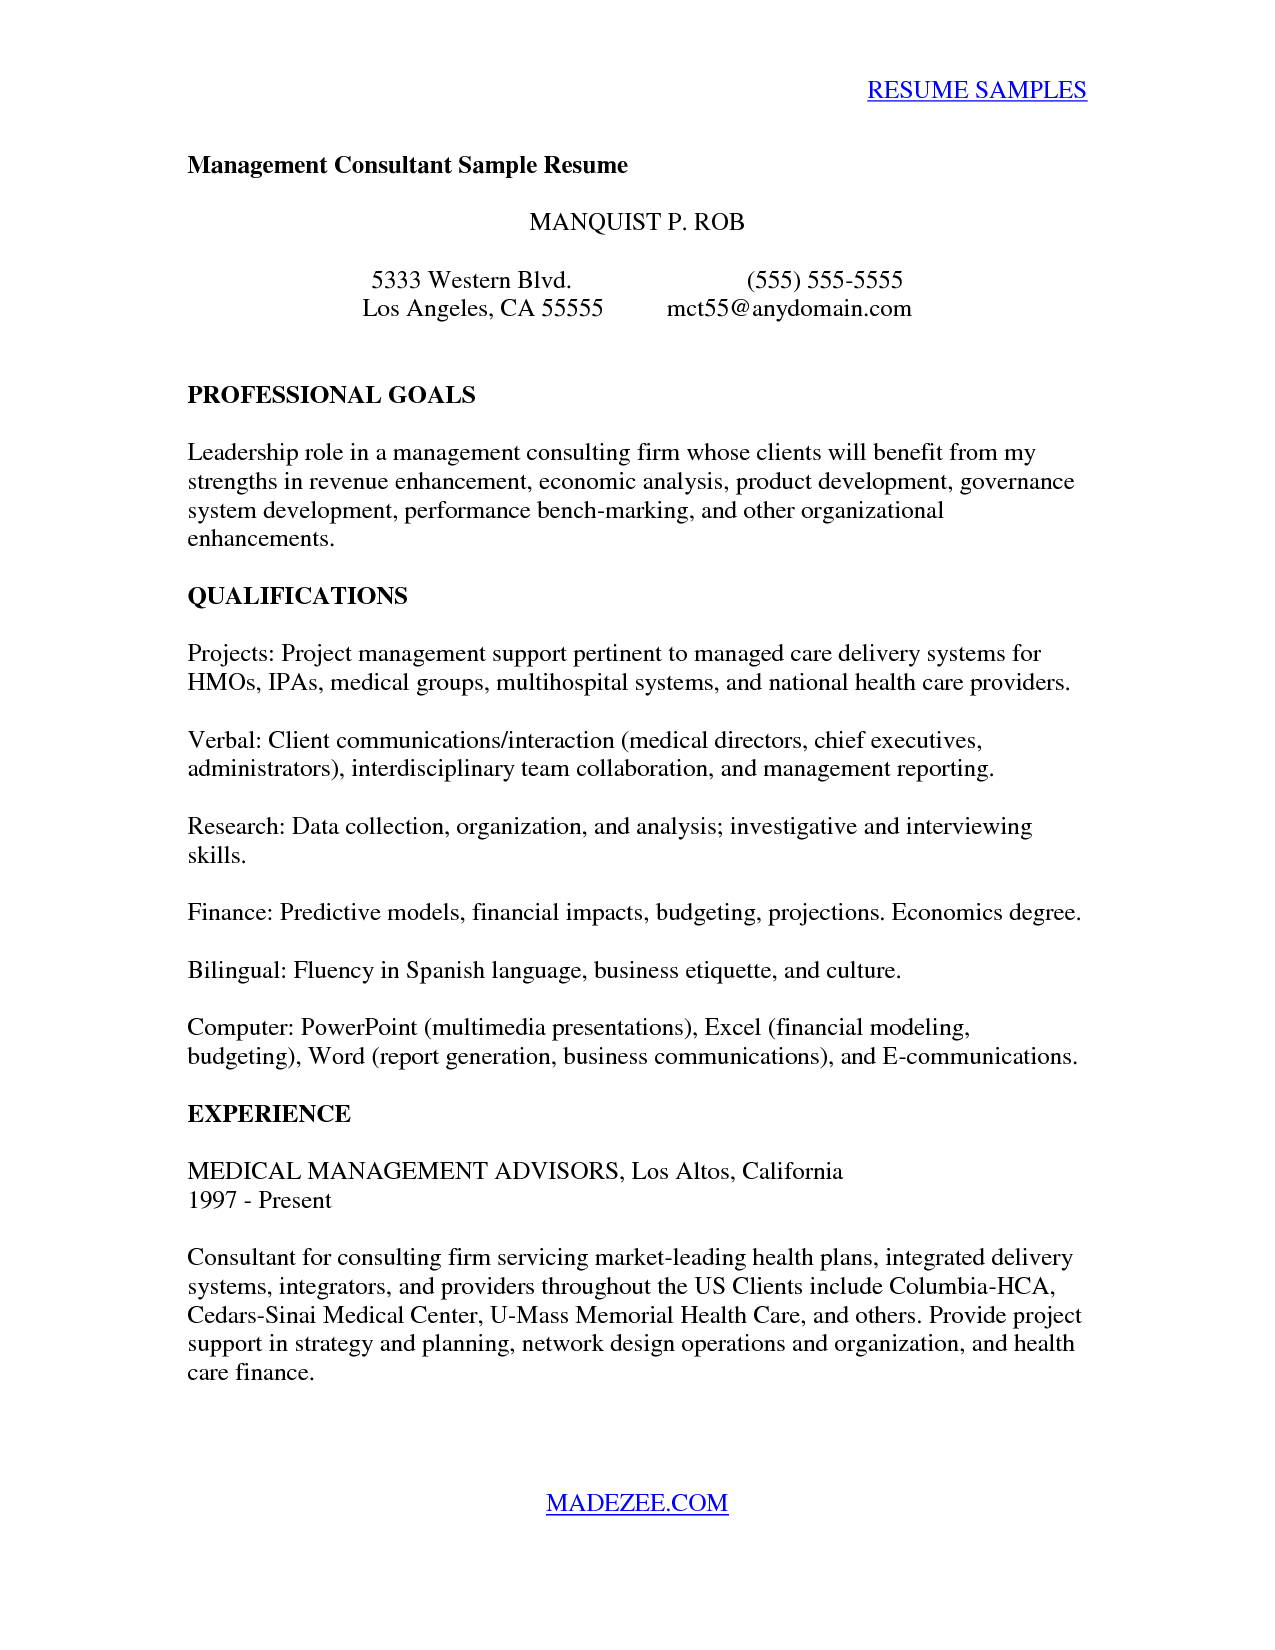 Project Management Consultant Cover Letter Cv Cover Letter Template Samples Letter Templates